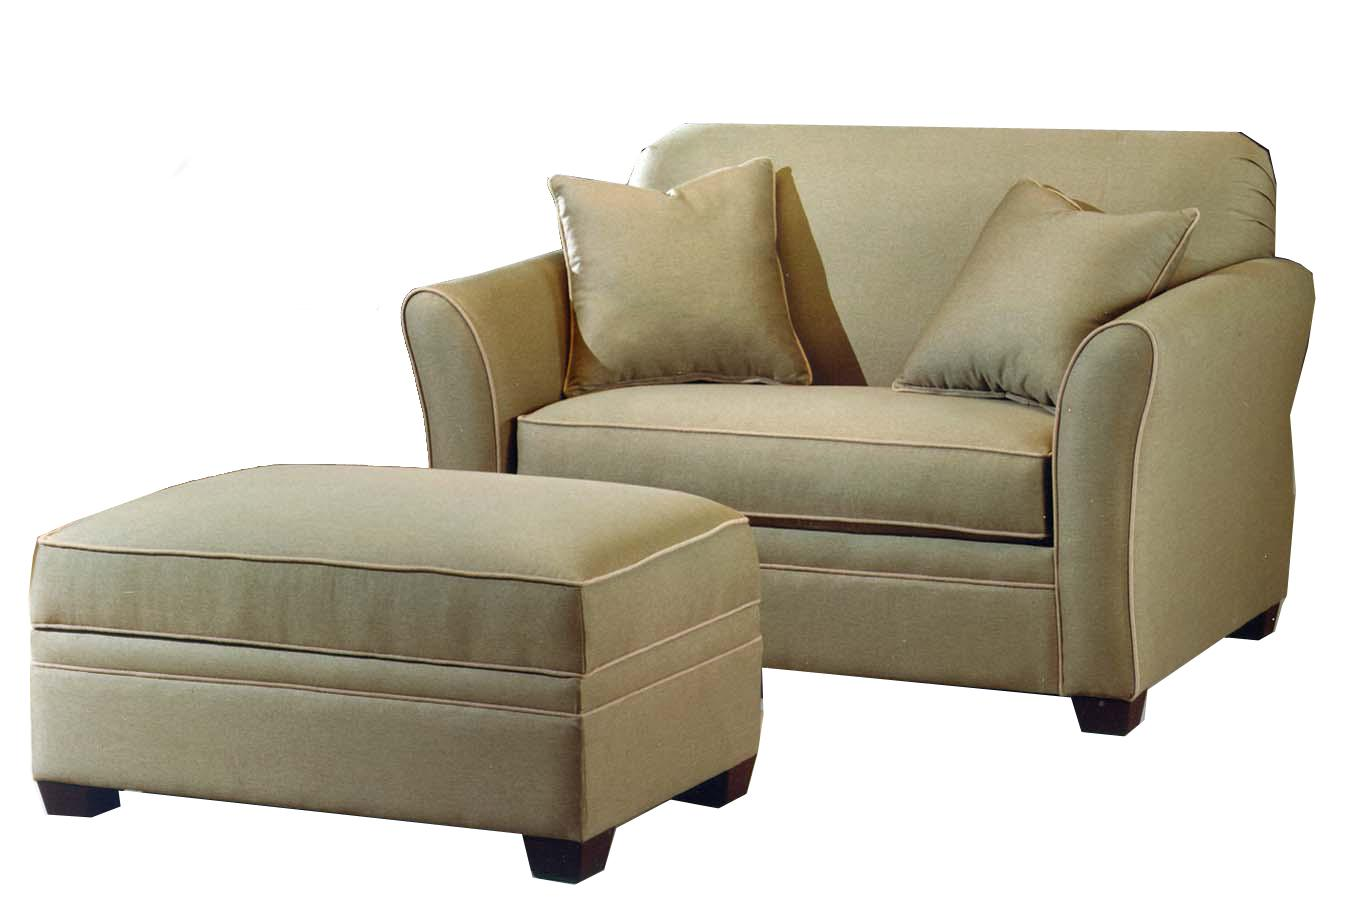 601 Chair & Ottoman by LaCrosse at Mueller Furniture